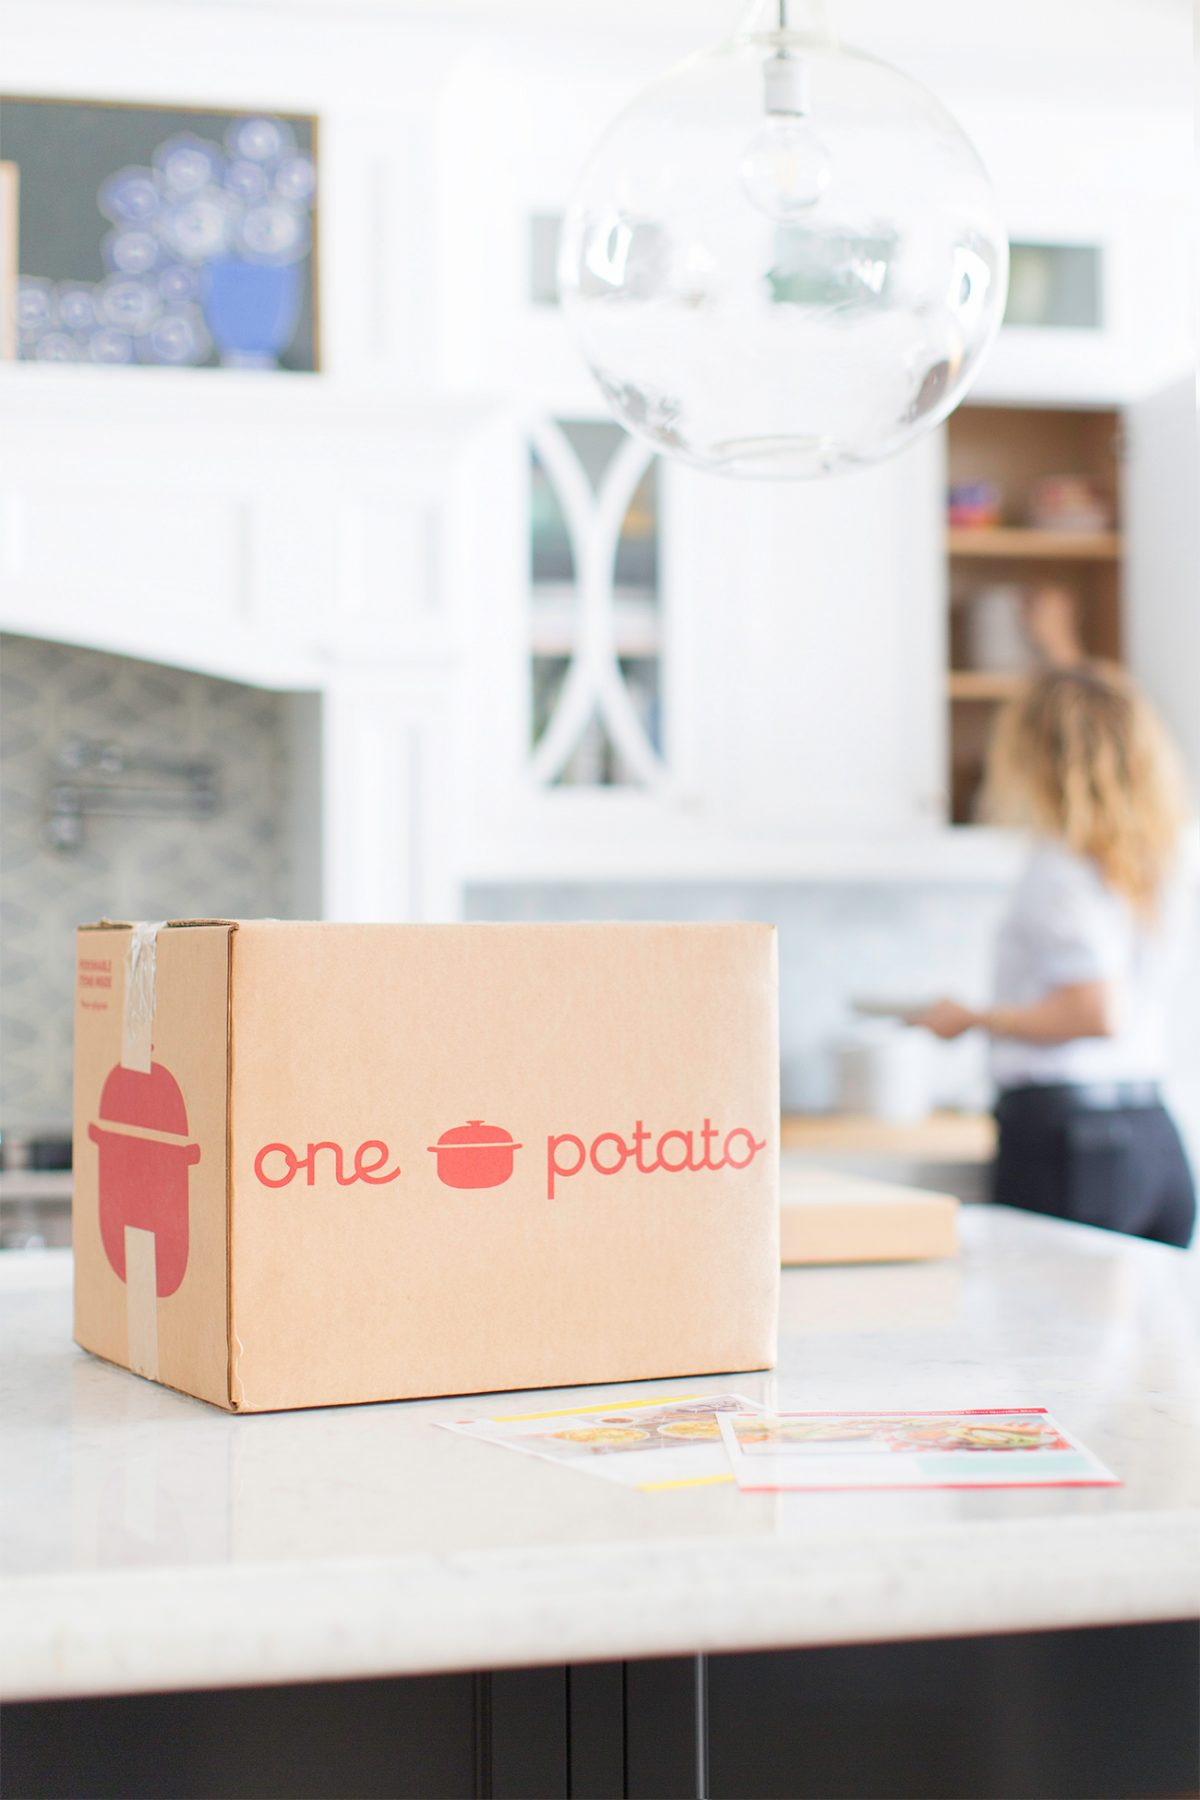 One Potato: Meal Kit Service